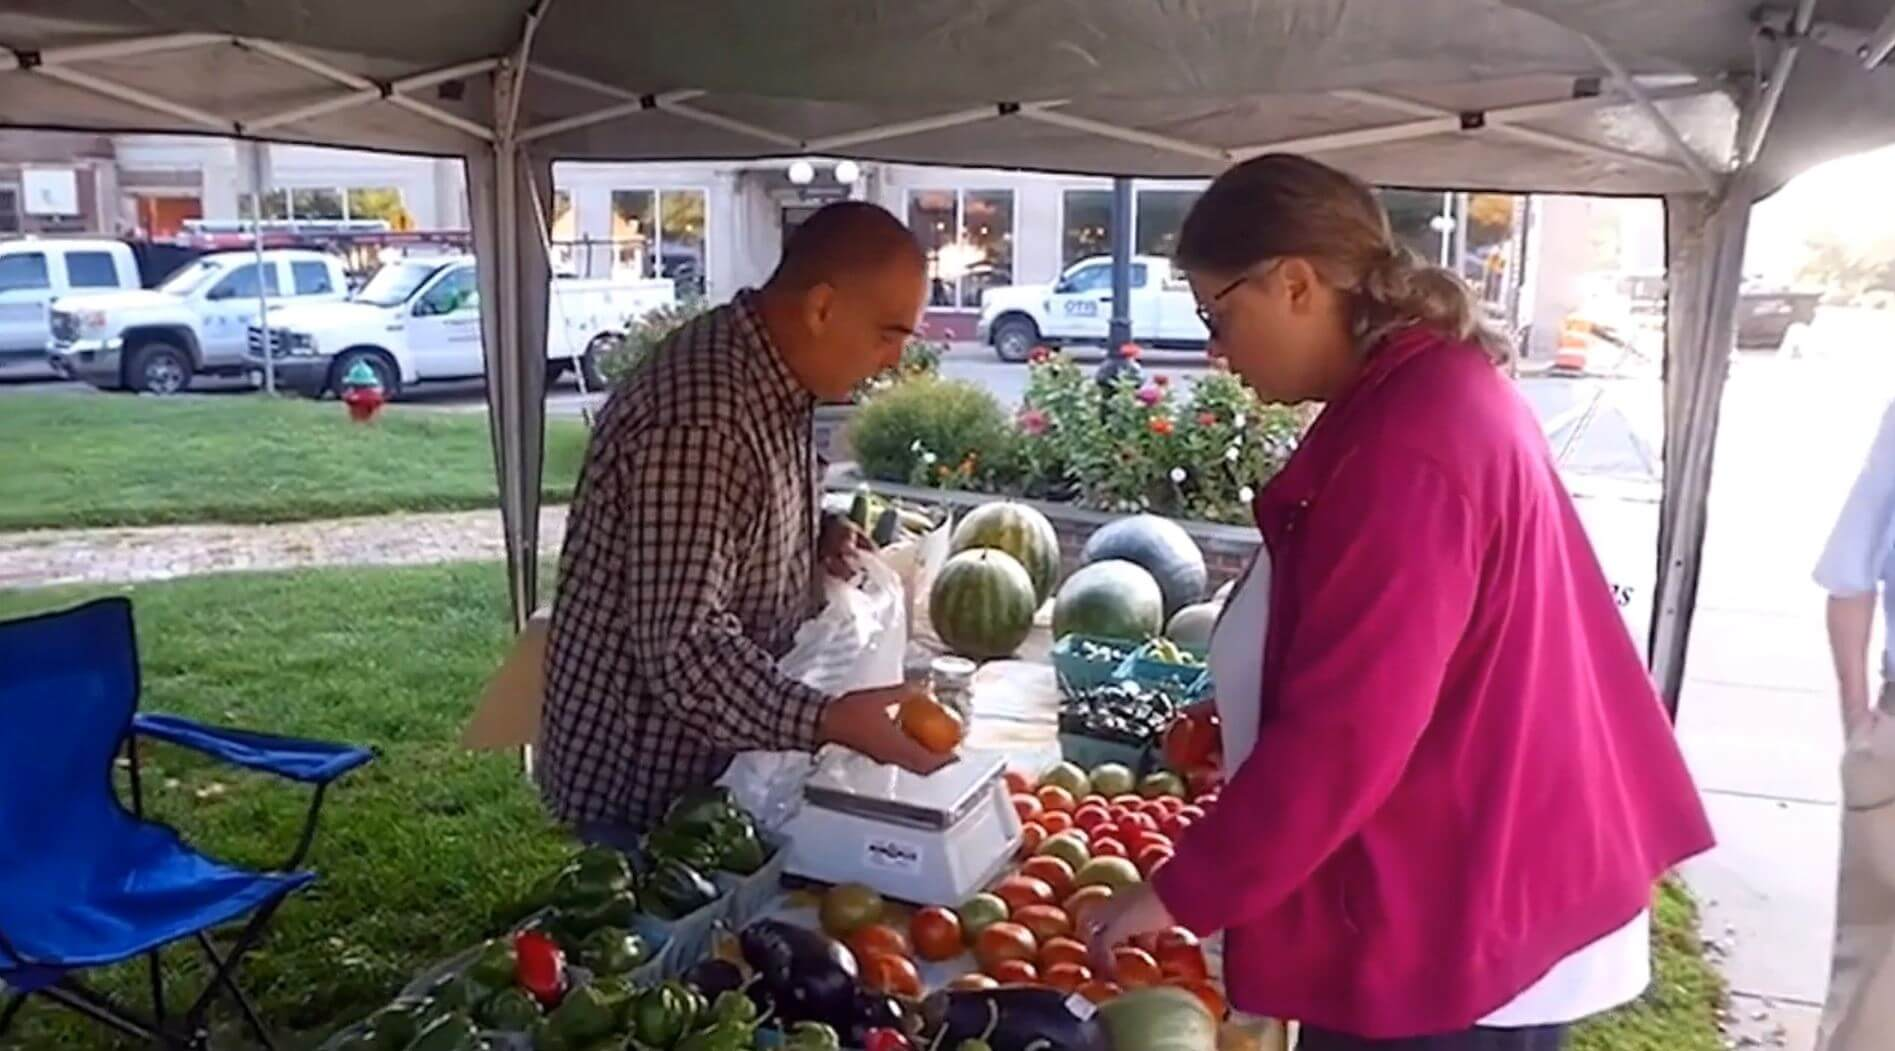 Man and woman at farmer's market